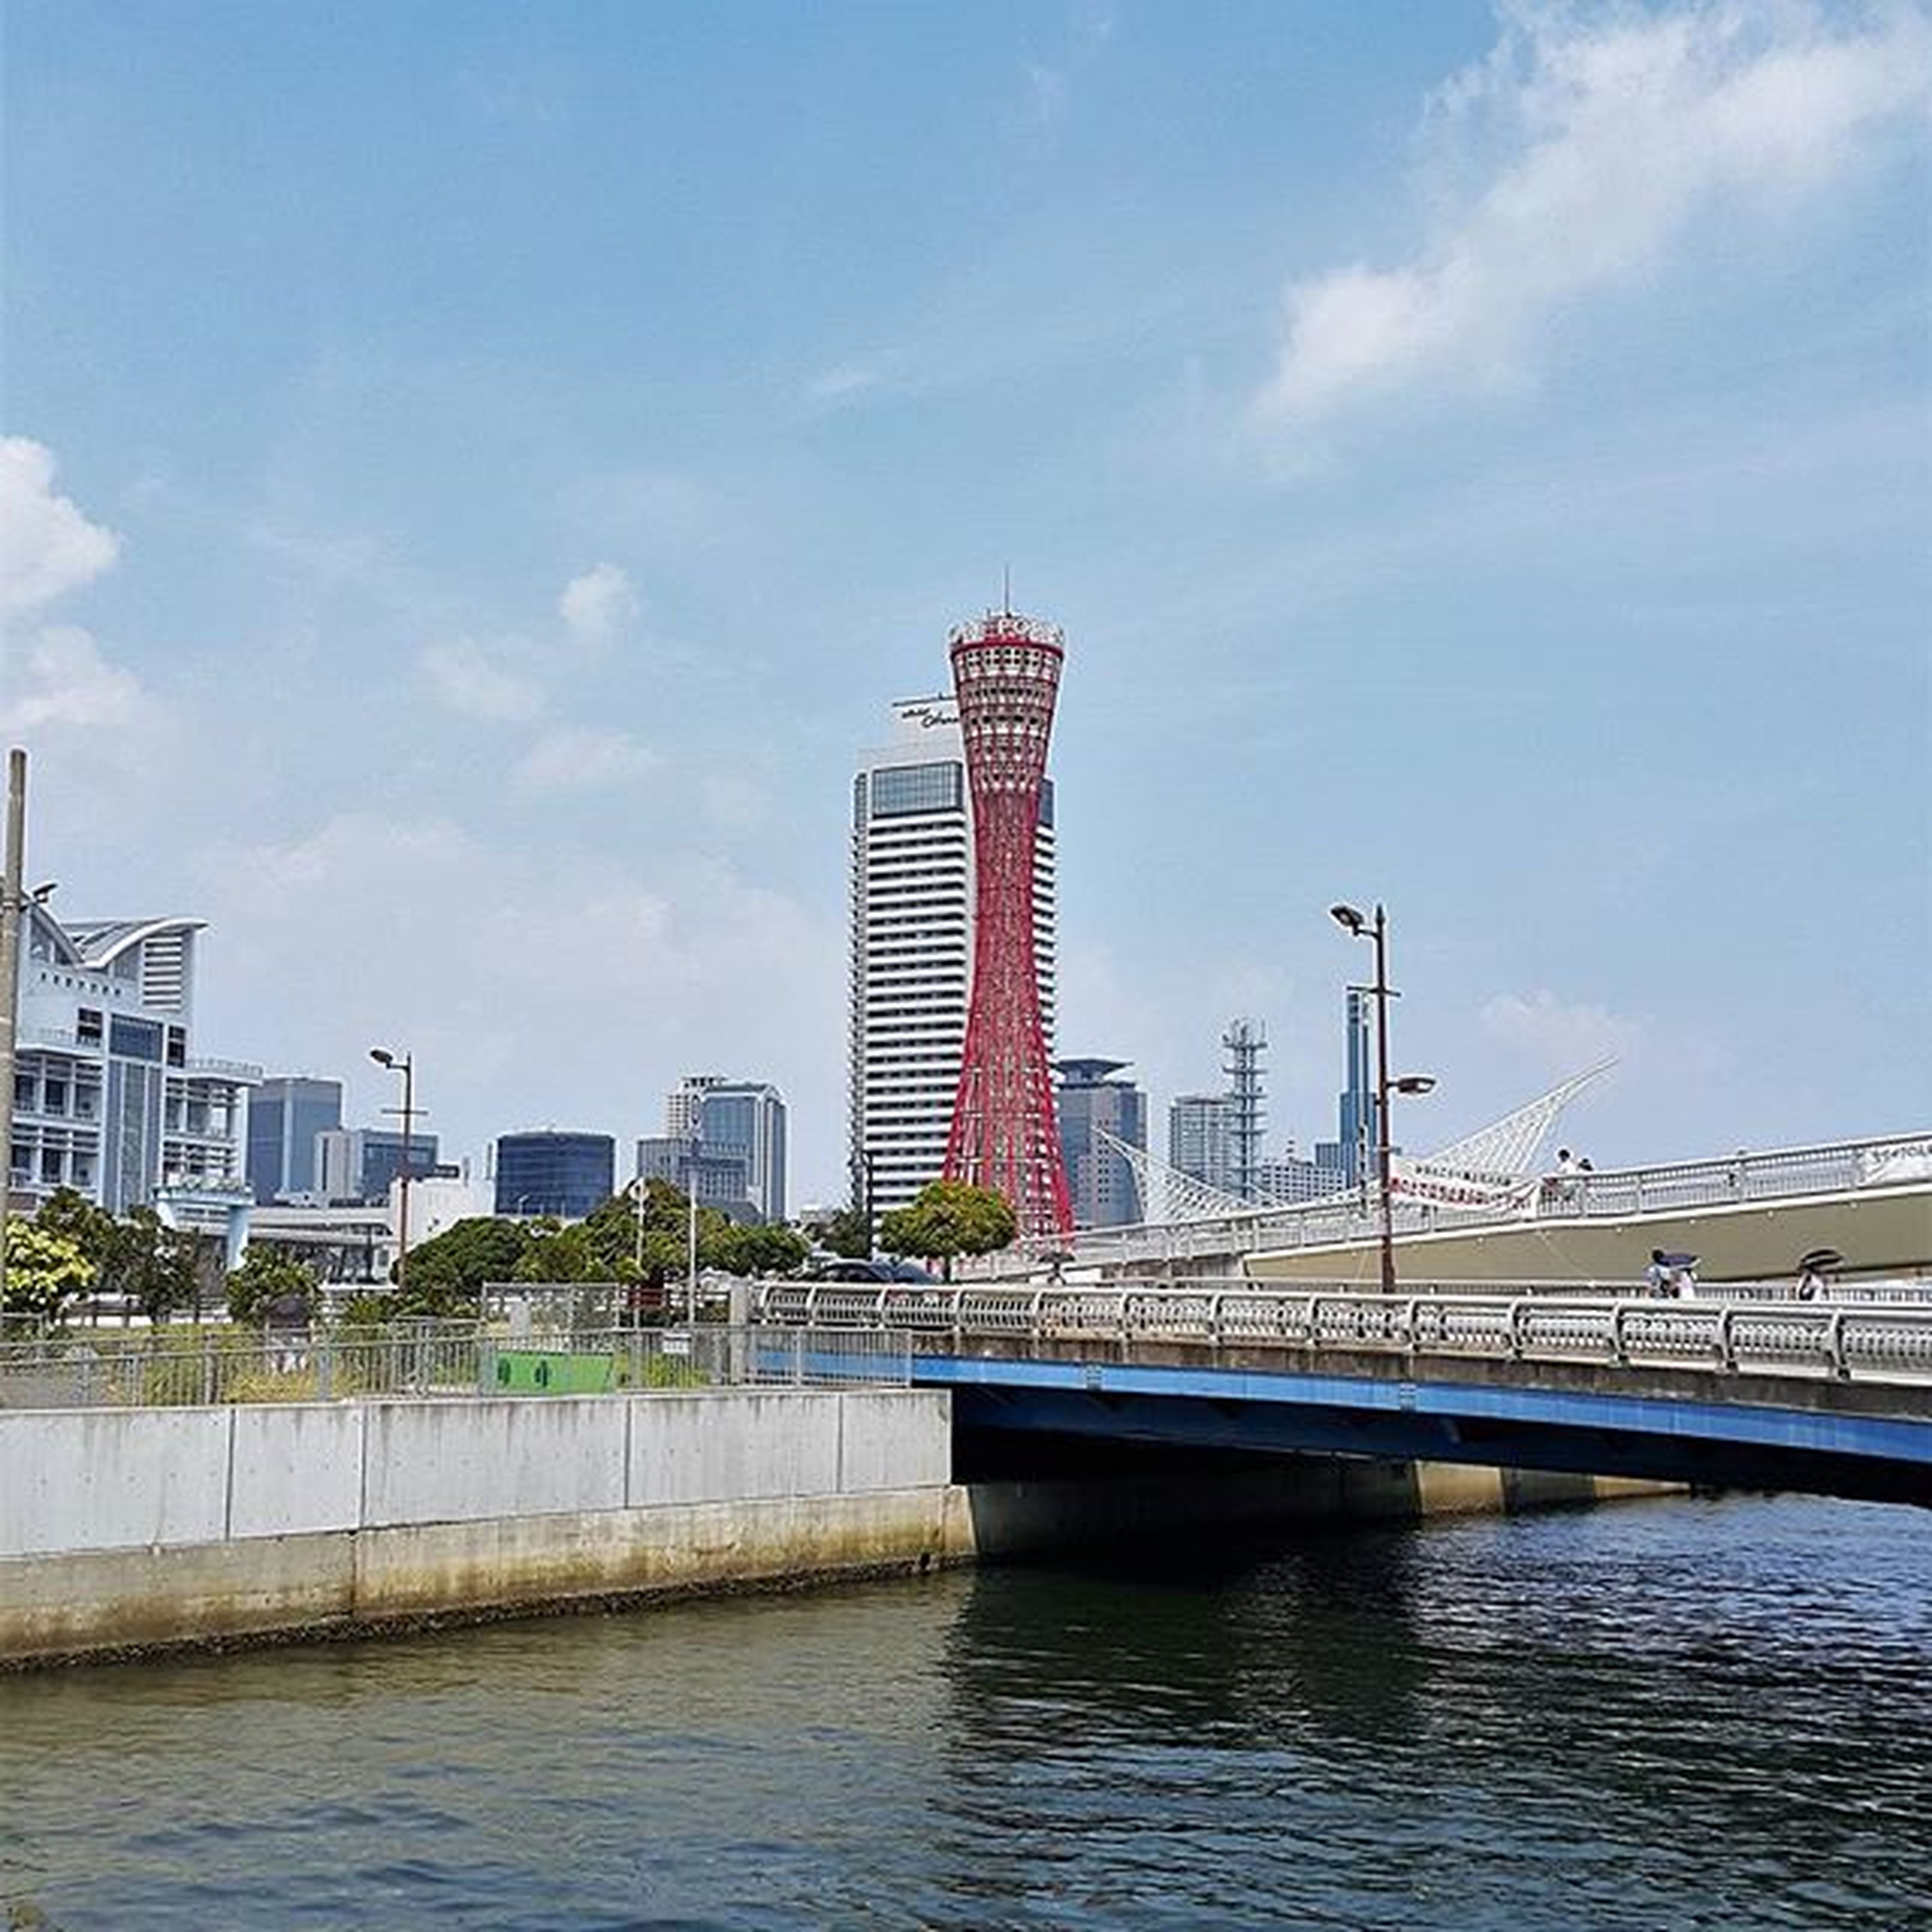 architecture, built structure, building exterior, city, water, sky, waterfront, river, skyscraper, cityscape, modern, urban skyline, office building, connection, cloud, tall - high, cloud - sky, tower, bridge - man made structure, skyline